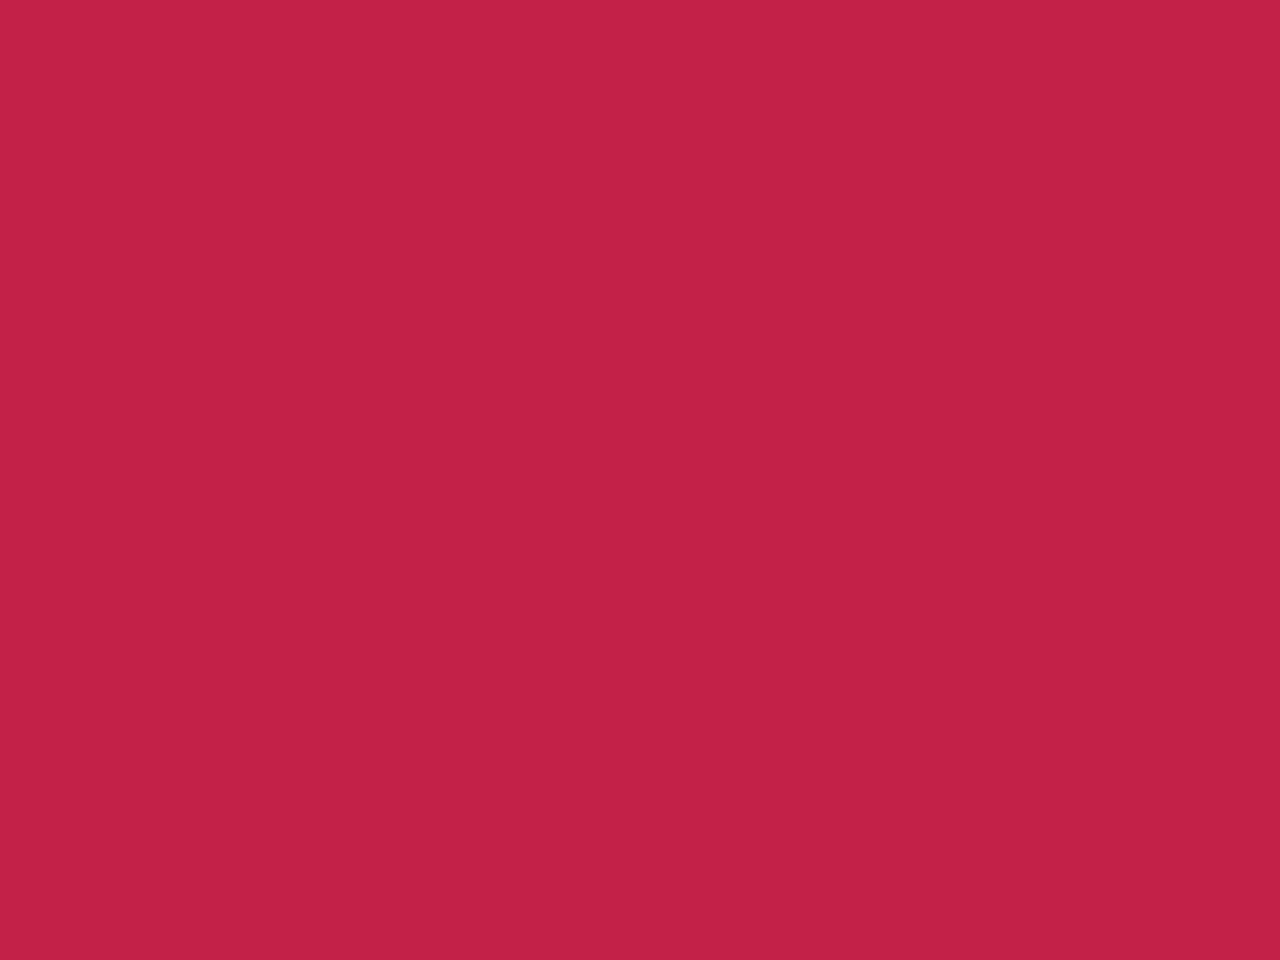 1280x960 Bright Maroon Solid Color Background